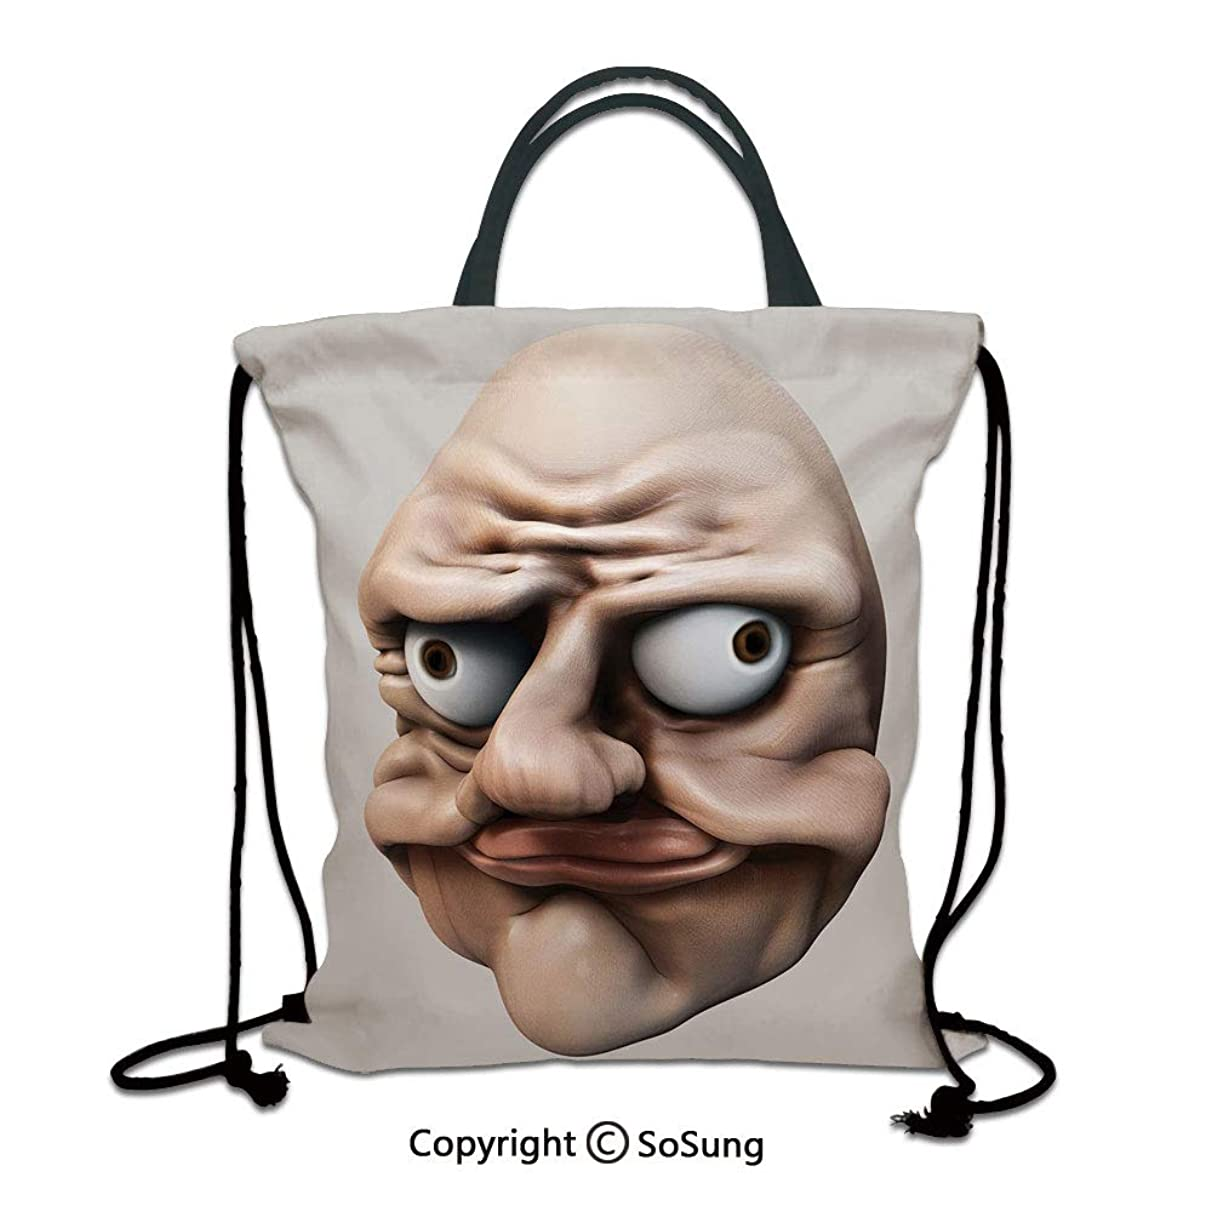 Humor 3D Print Drawstring Bag String Backpack,Grumpy Internet Troll Face with Trippy Gestures Ugly Post Meme Joke Image Decorative,for Travel Gym School Beach Shopping,Egg Shell and Tan